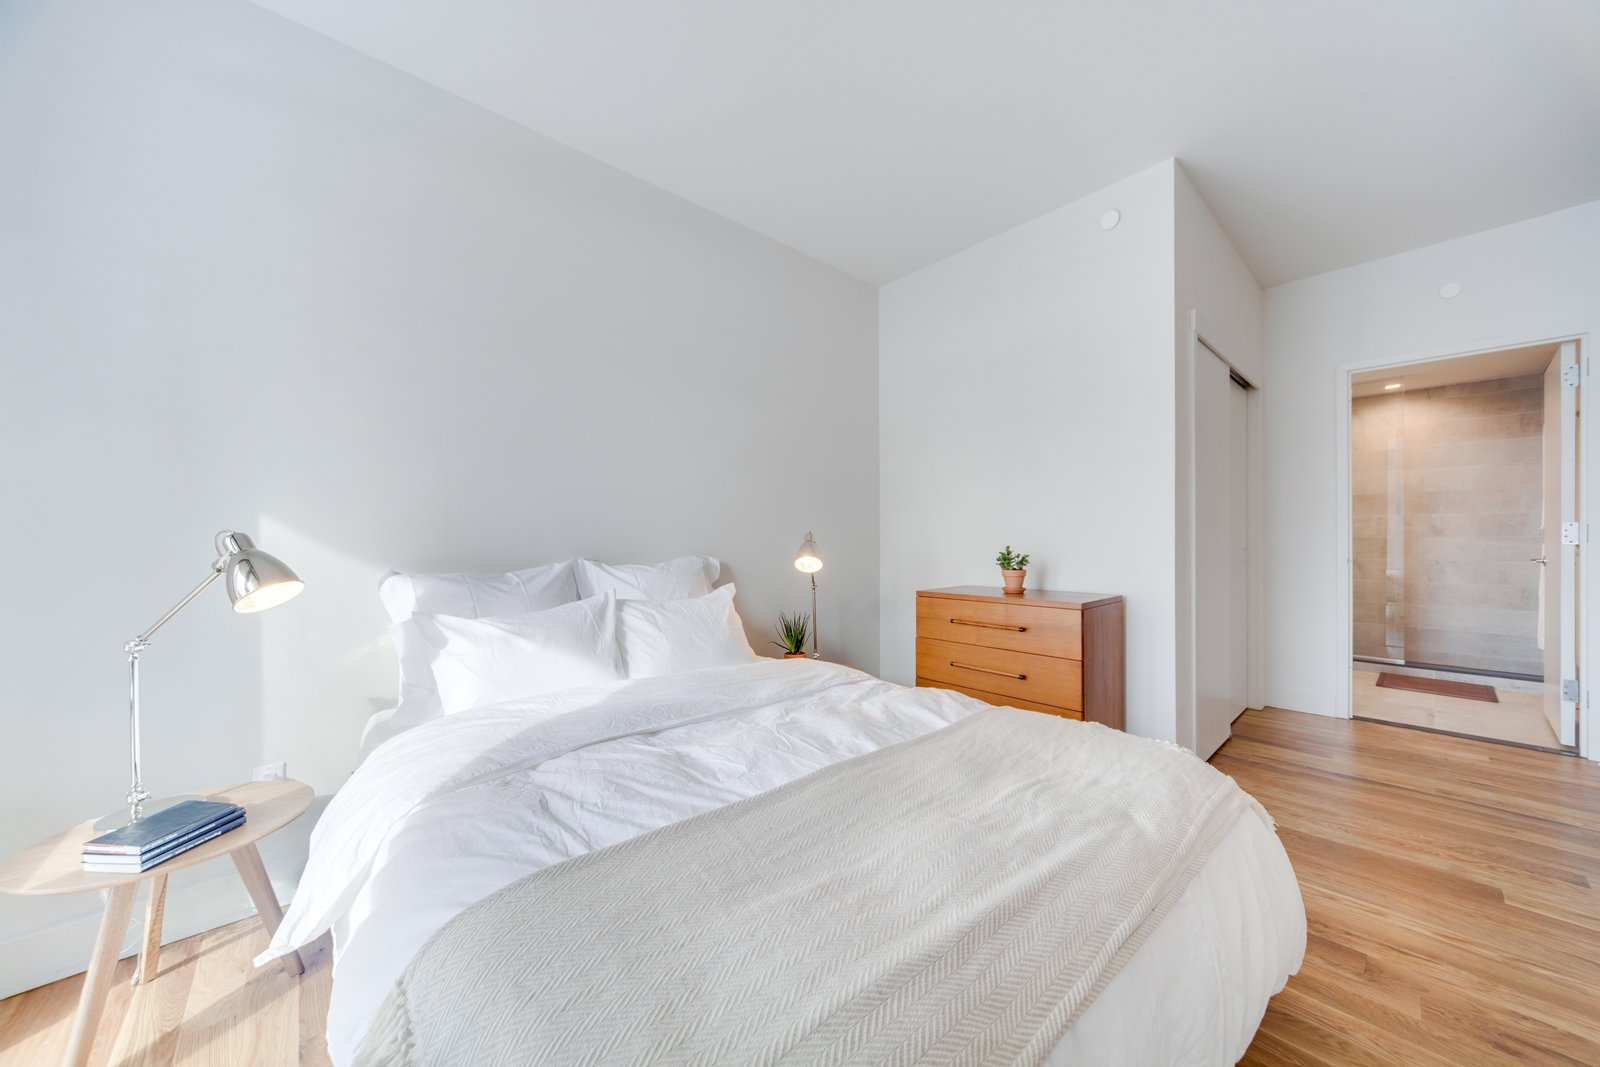 Bedroom, Medium Hardwood Floor, Table Lighting, Bed, Night Stands, and Dresser In the Baltic residence, renters can choose from a private studio or a co-living suite with several private bedrooms and a common space.  Photo 3 of 12 in These 3 Co-Living Companies Are Transforming Urban Living